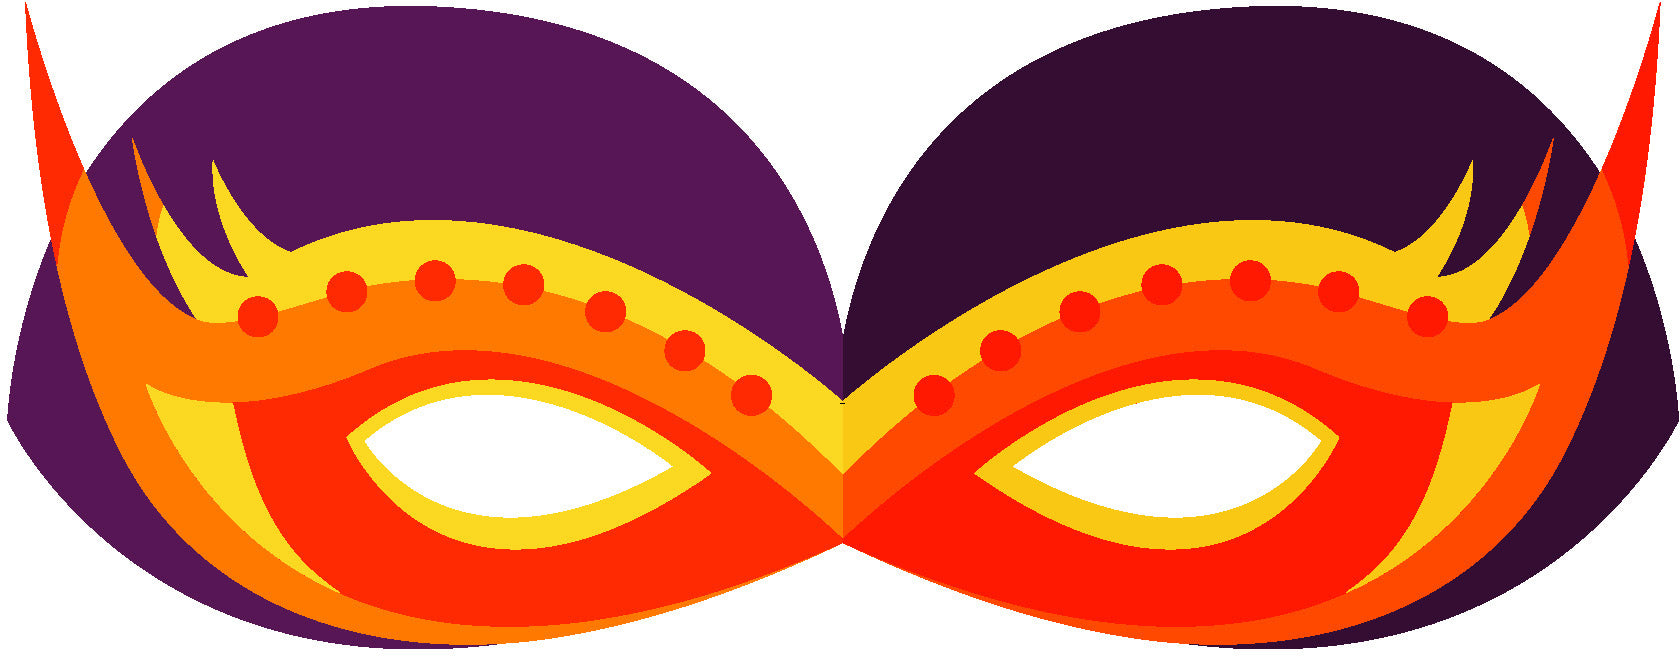 Pretty Colorful Masquerade Mask Cartoon - Orange Purple Fire Mask Vinyl Decal Sticker